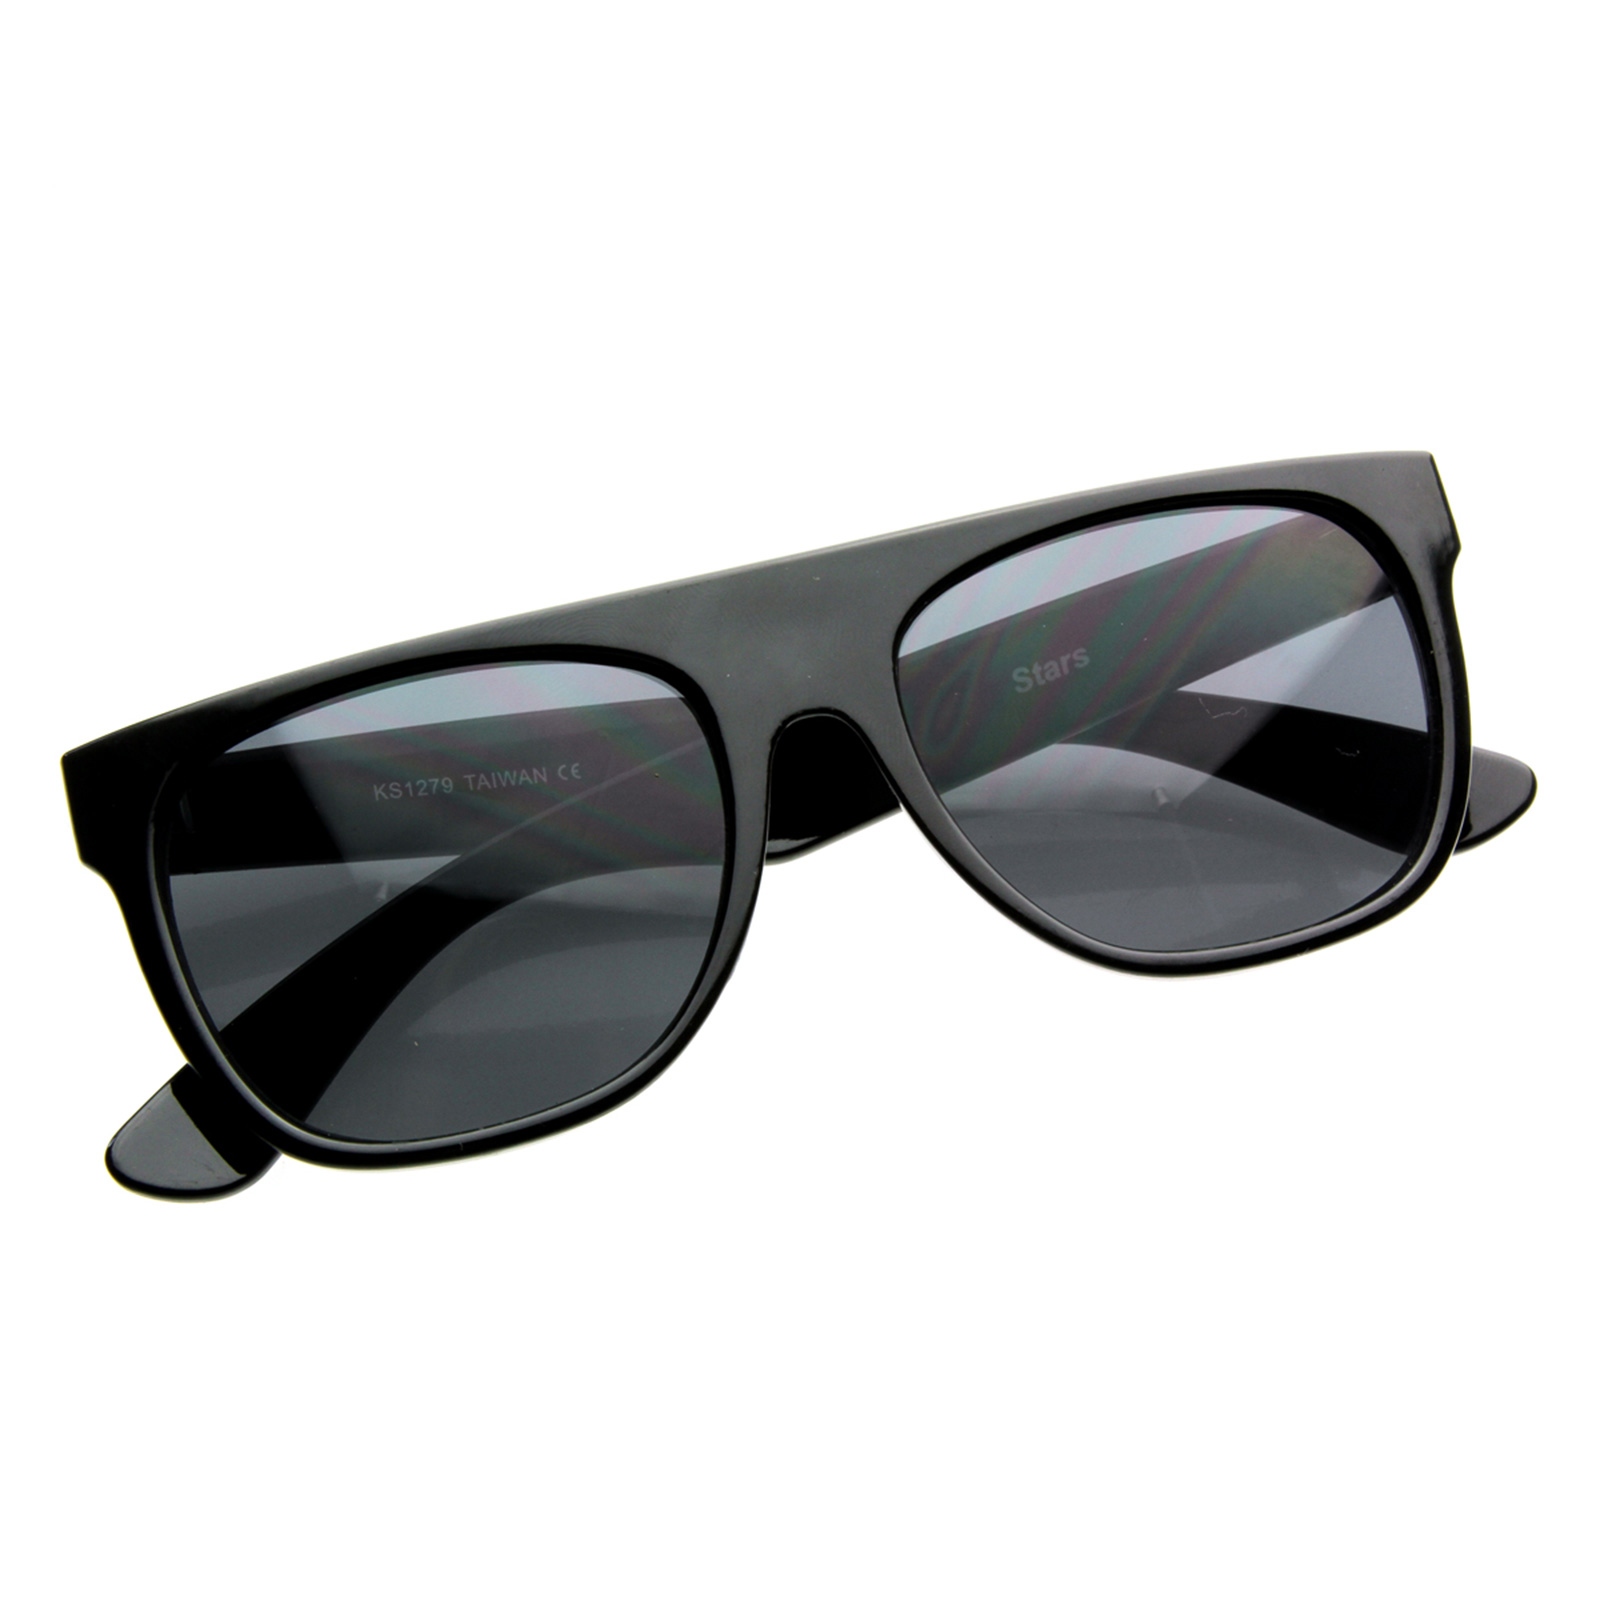 a8fd646337ee Super Flat Top Sunglasses Ebay